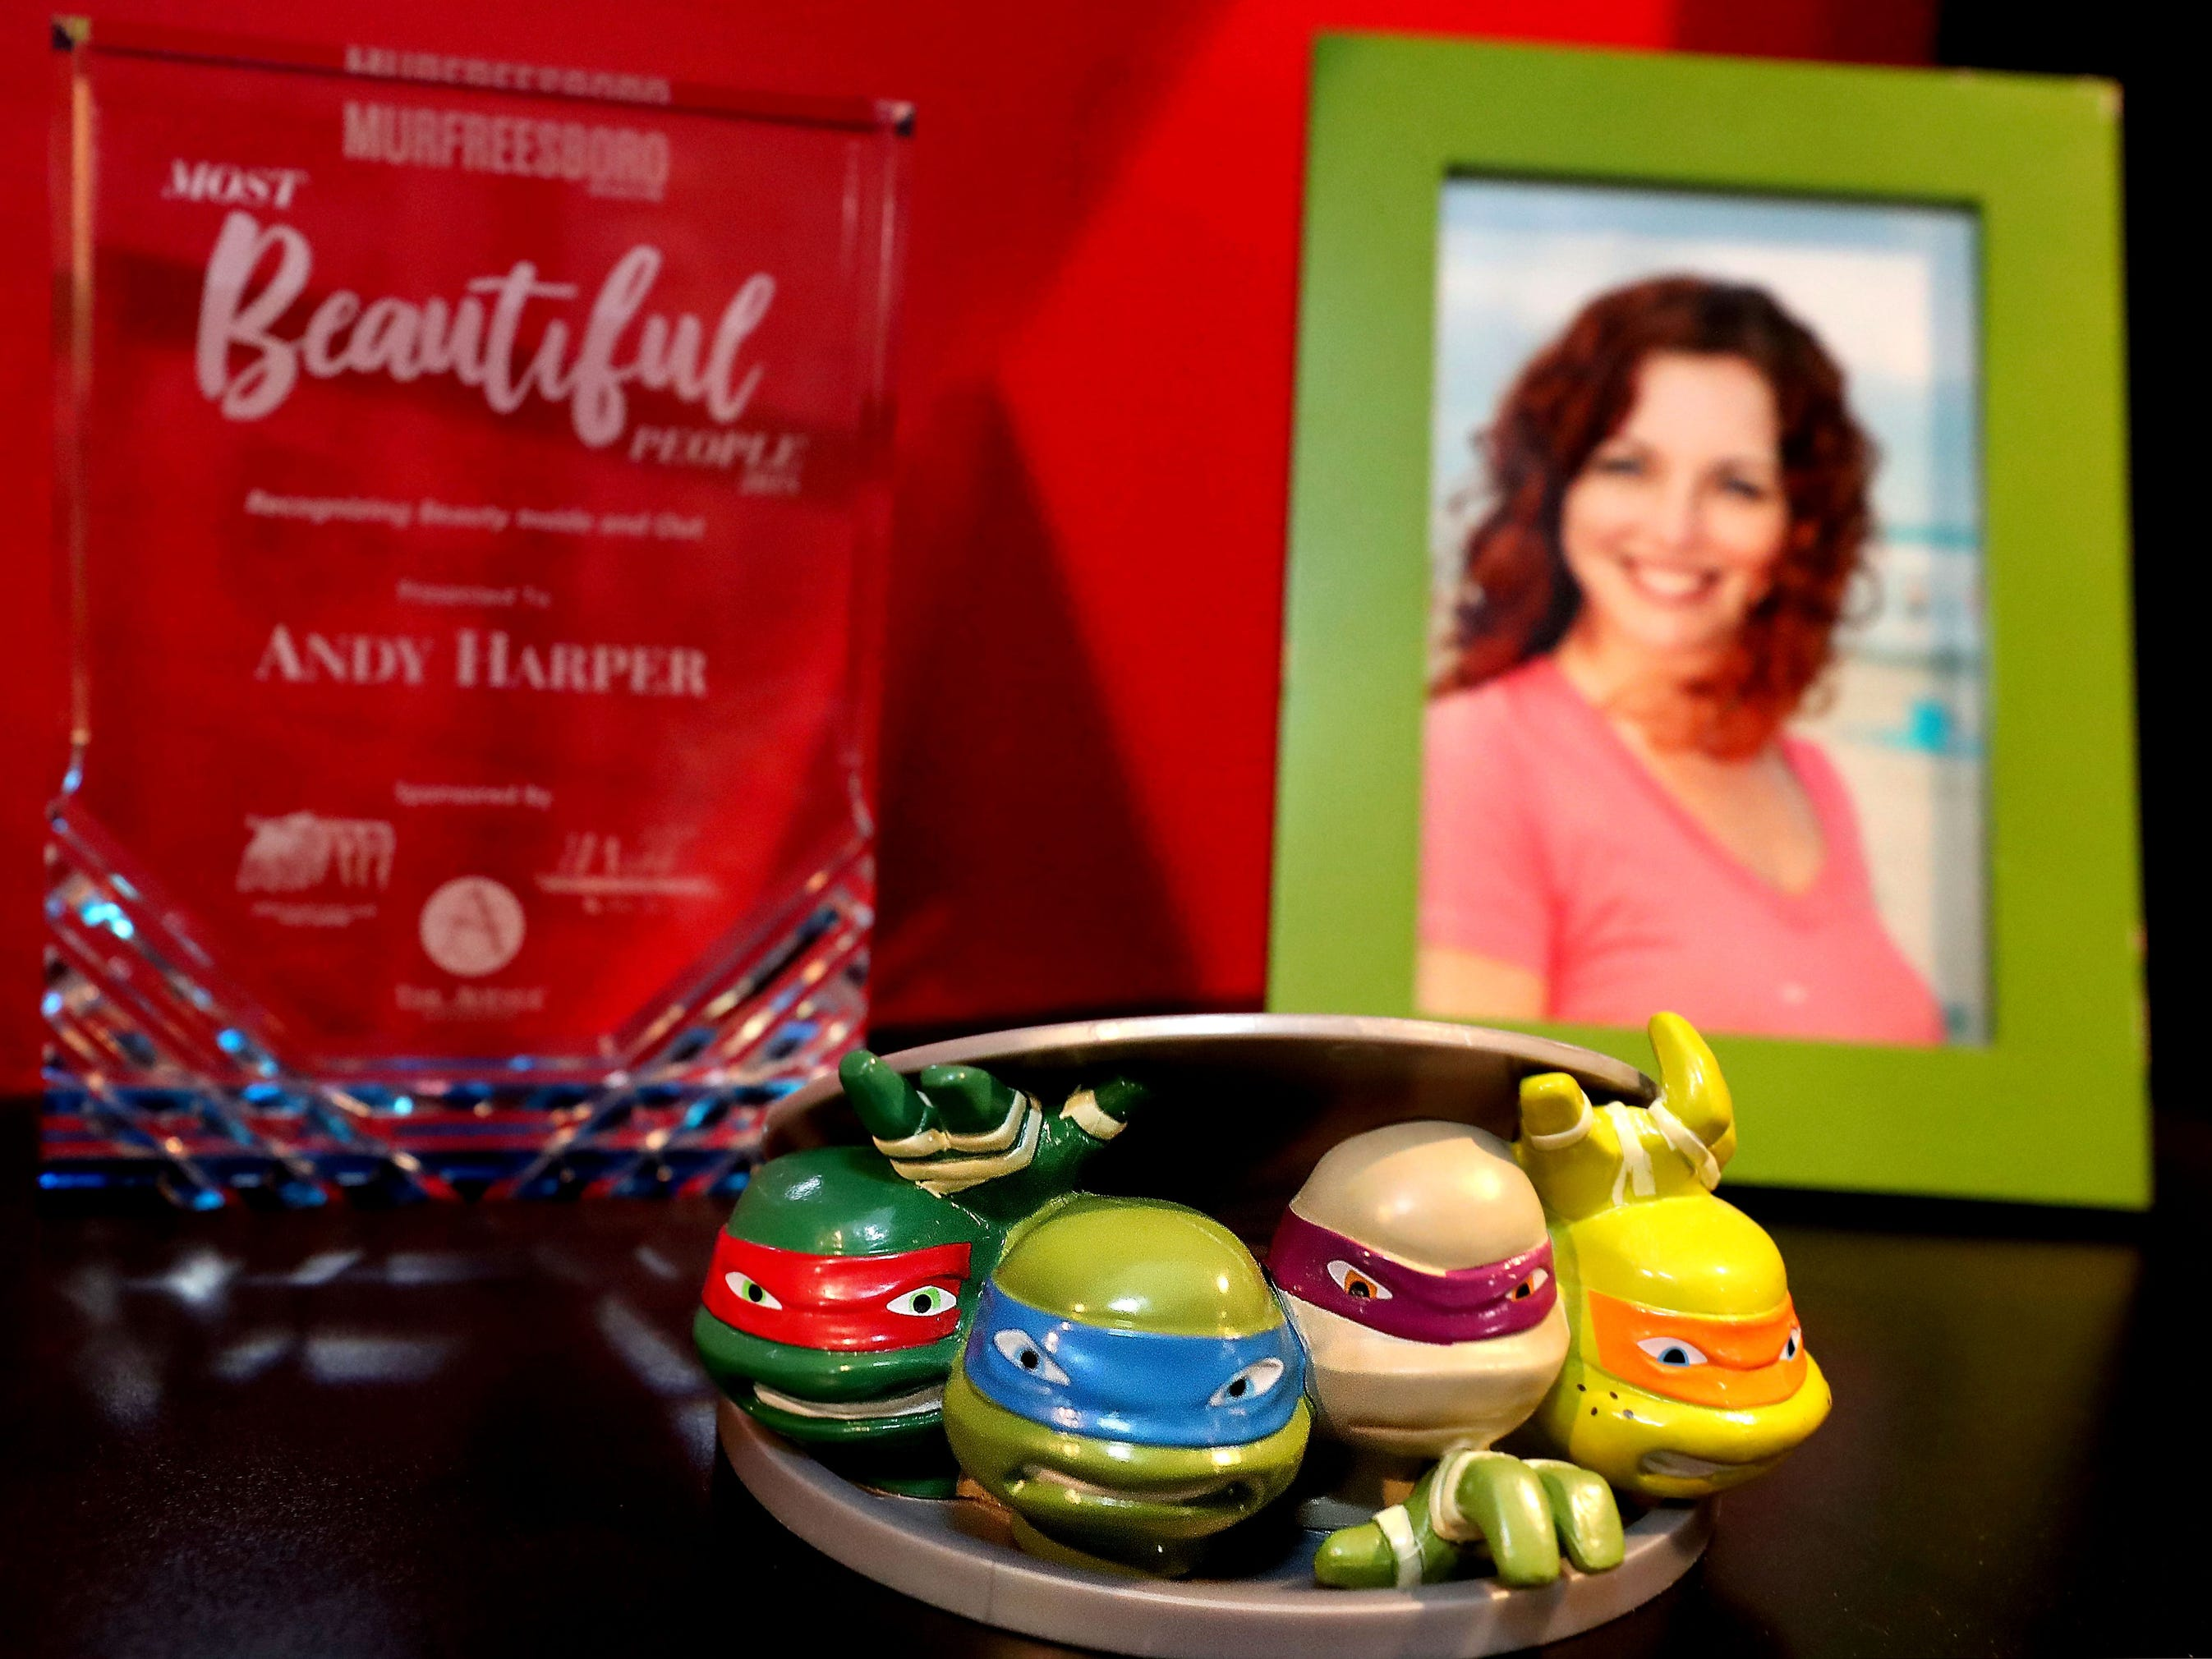 """Andy Harper has done guitar solos for a few episodes of the new """"Rise of the Teenage Mutant Ninja Turtles"""" that is shown on Nickelodeon. A Ninja turtle figure is on the shelf in Harper's studio with his Most Beautiful People award and a photo of his wife Laura Harper."""